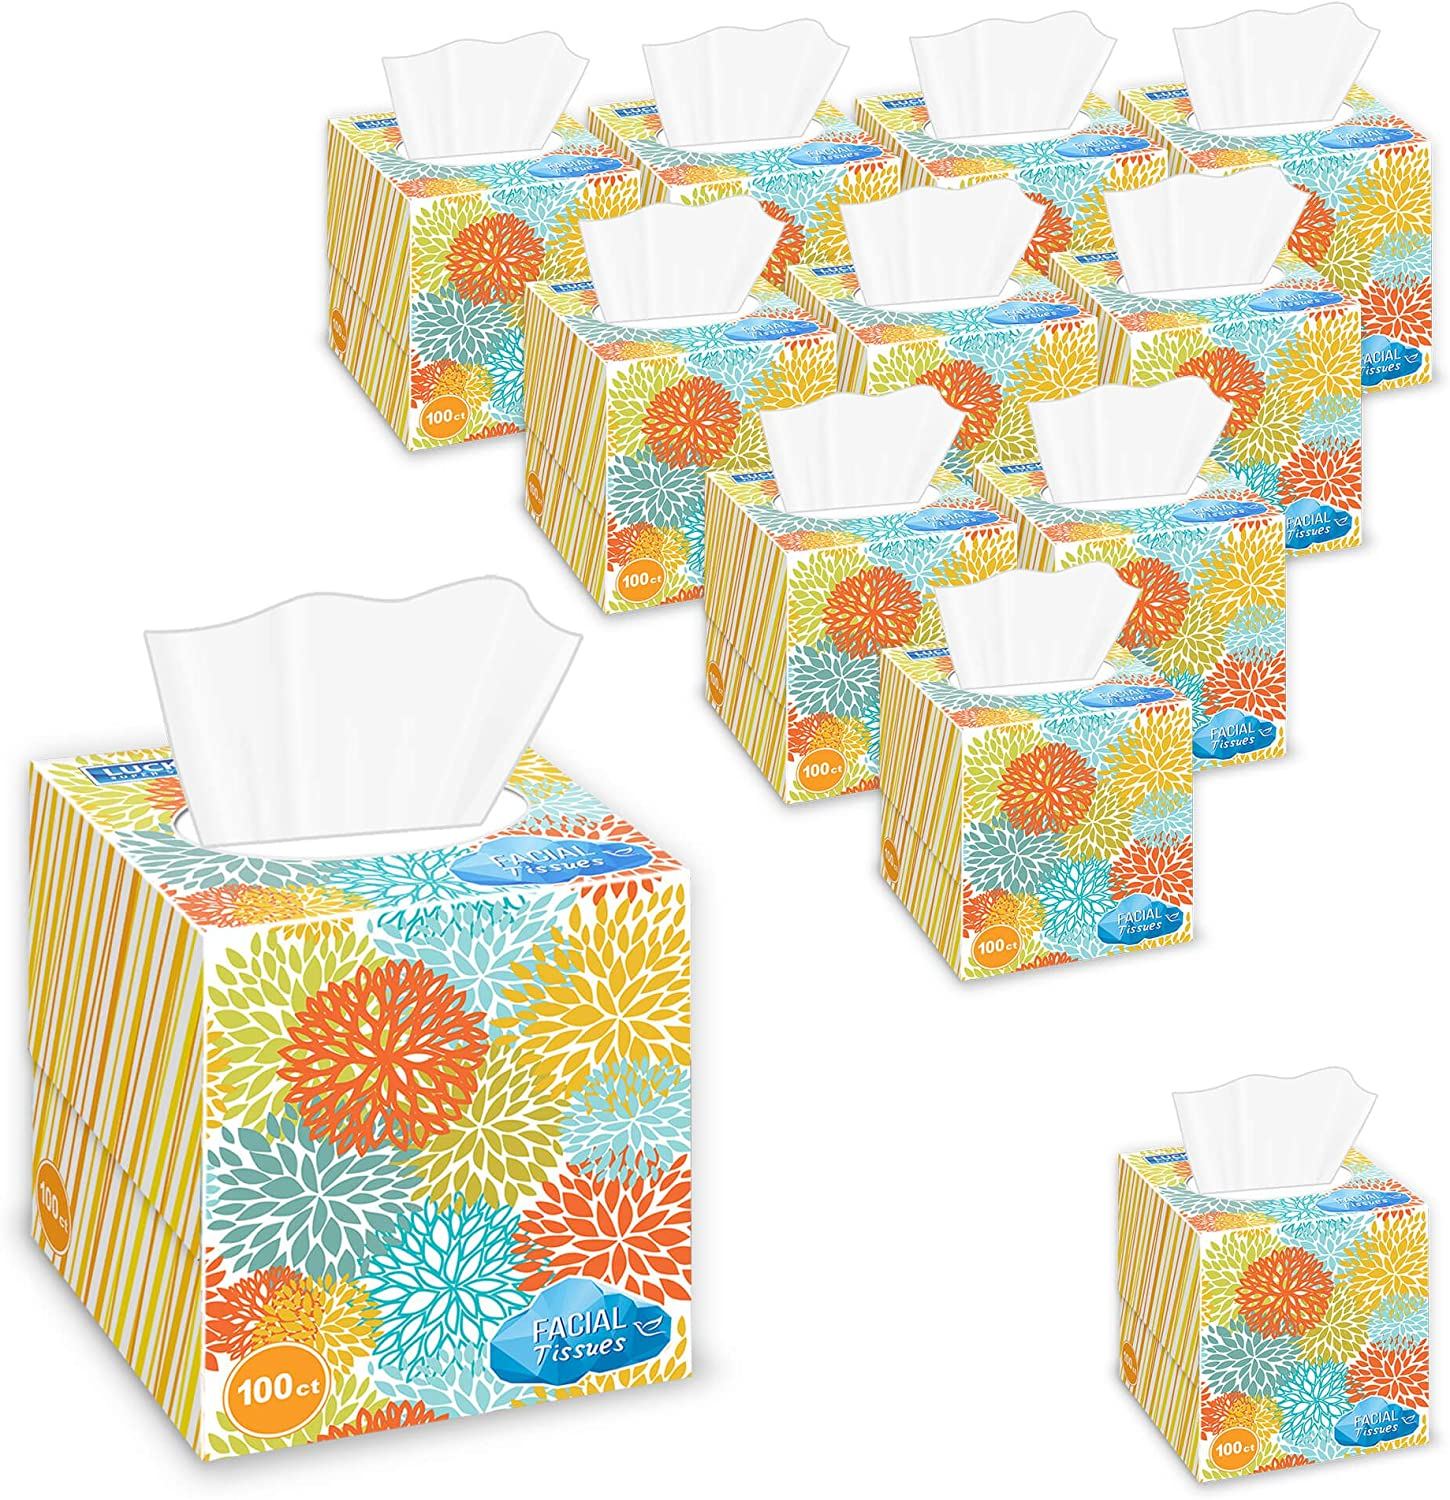 Lucky Super Soft Facial Tissues With Tissue wholesale Boxes Cube 12 gift